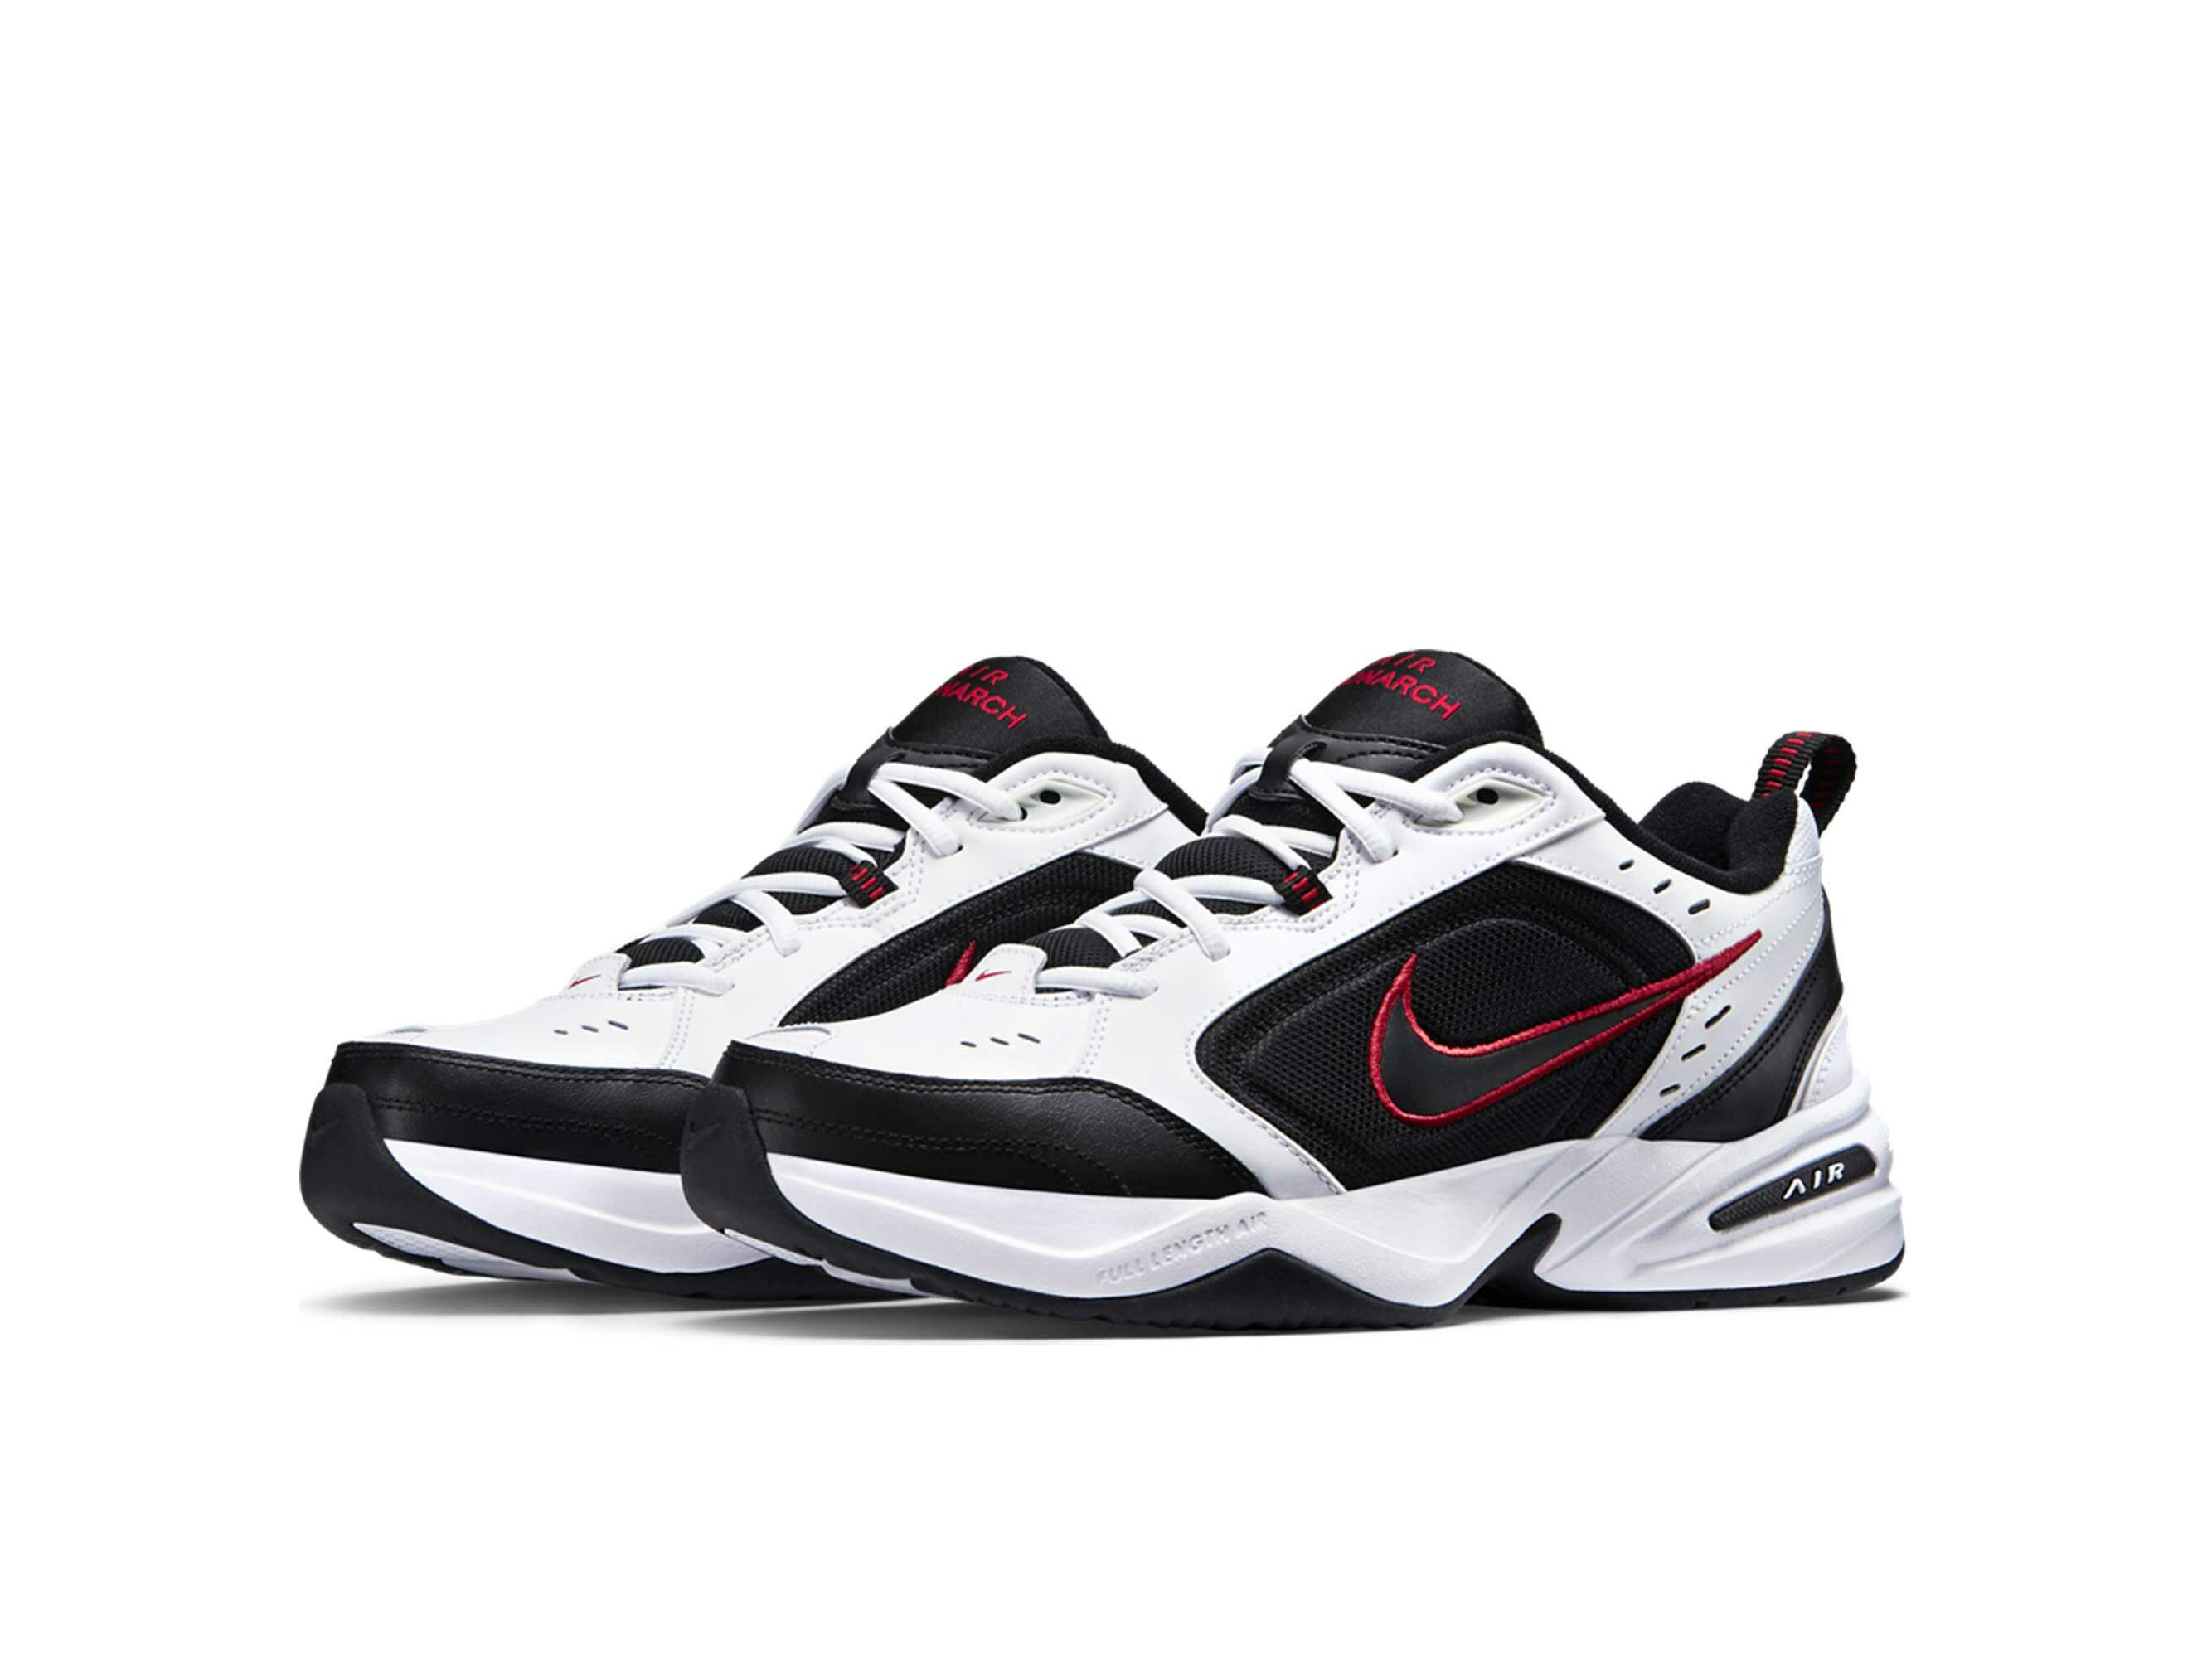 nike air monarch IV white black 416355_101 купить